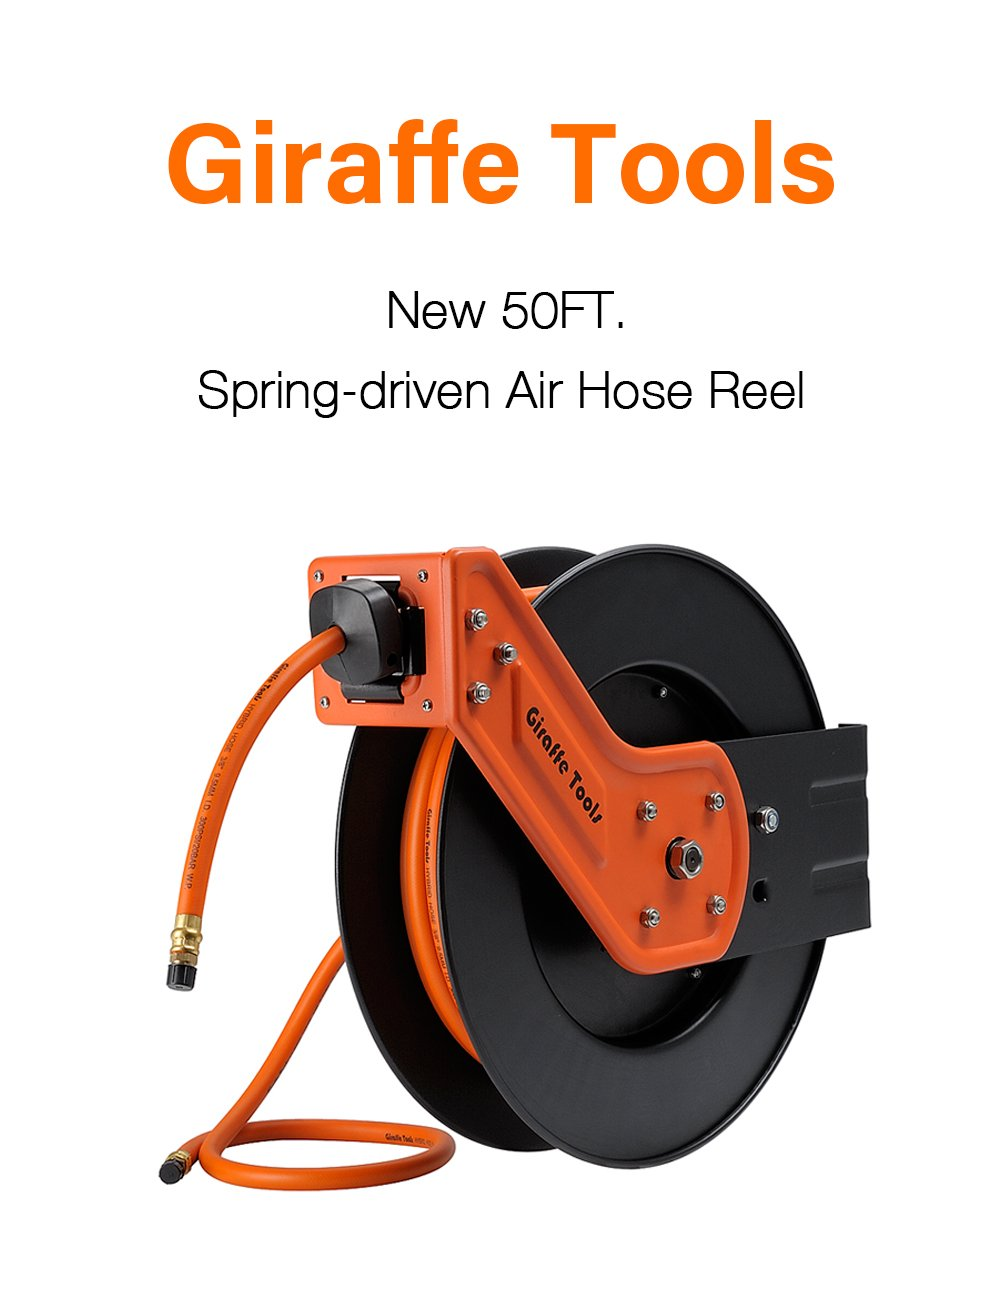 Giraffe Auto Retractable Air /Water Hose Reelwith Free 3/8 In. x 50 Ft, 1/4 In. MNPT Hybrid Air Hose.Mountable, Swivel Bracket, 300 PSI and Heavy Duty